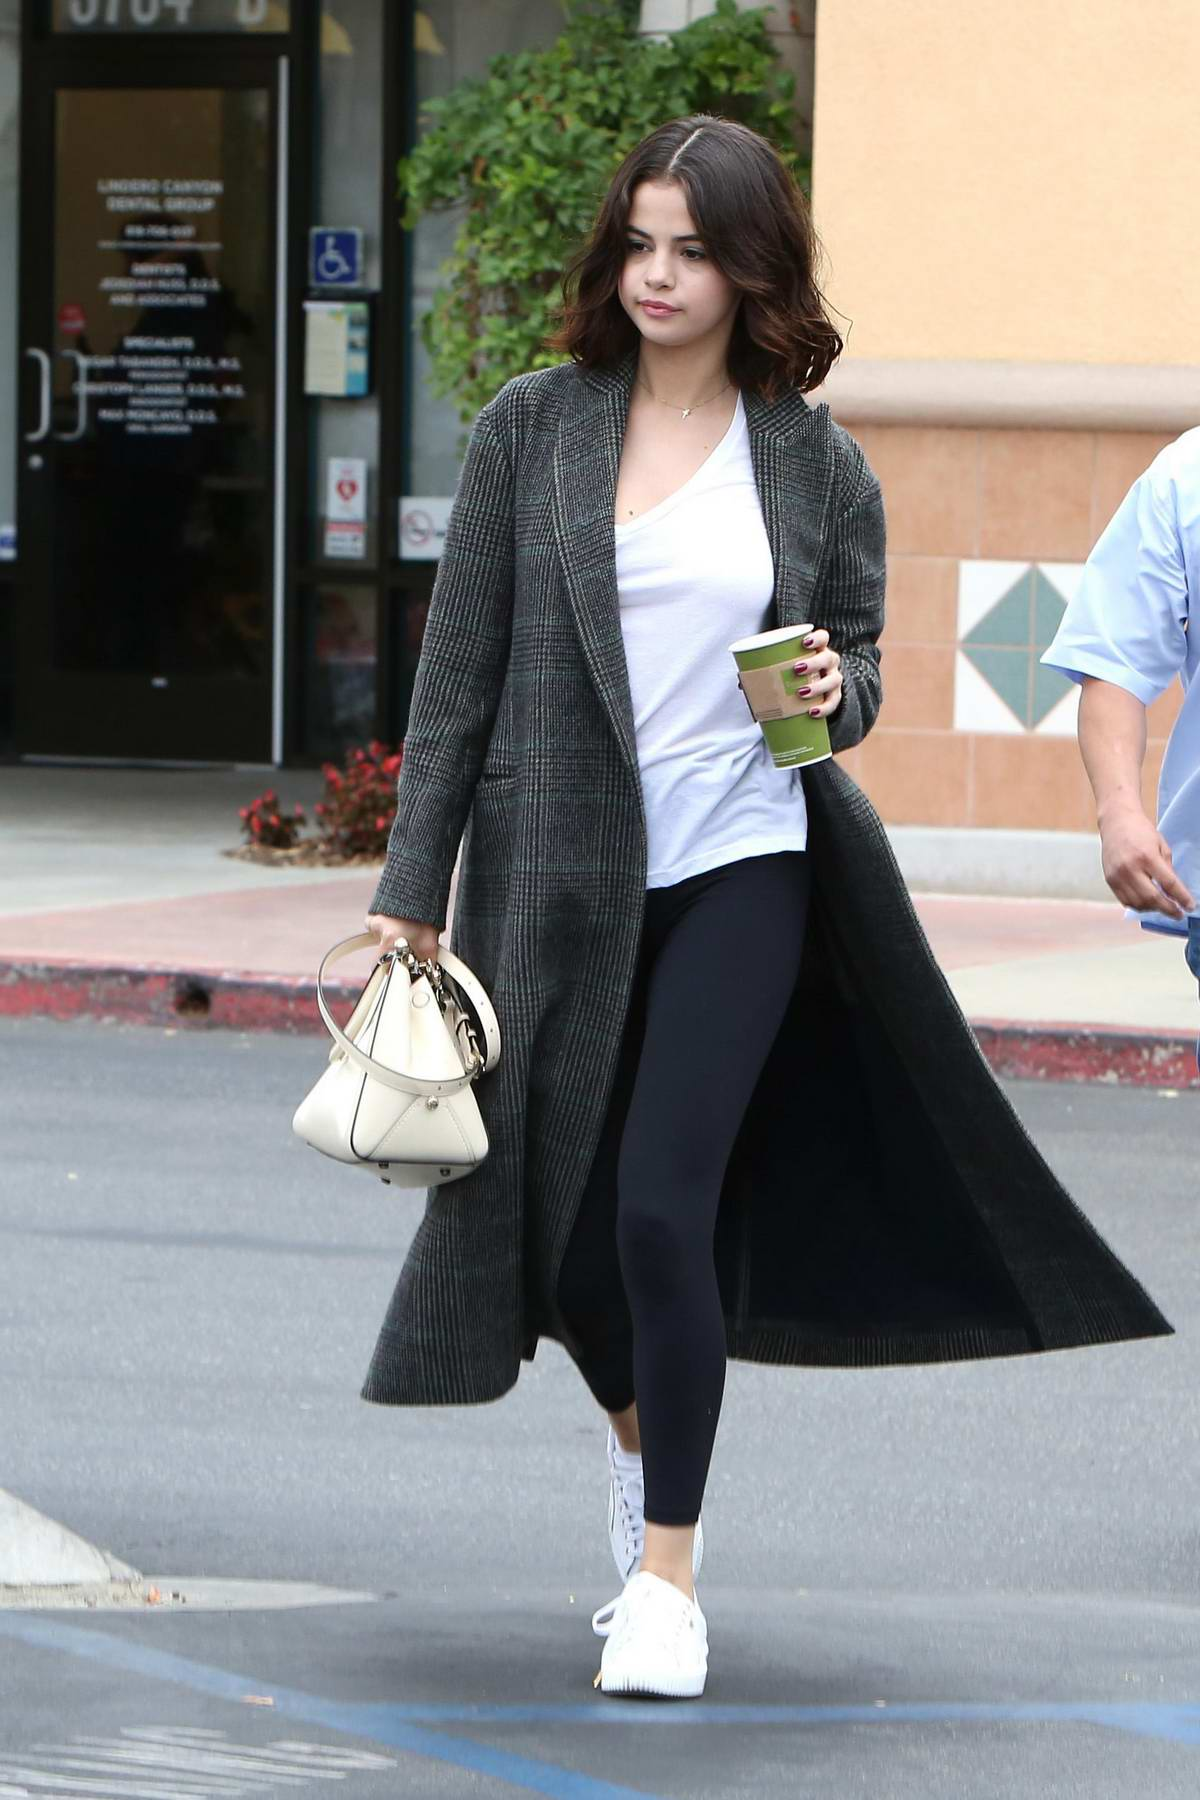 Selena Gomez stop by Panera Bread before heading into the Four Seasons in Westlake Village, California